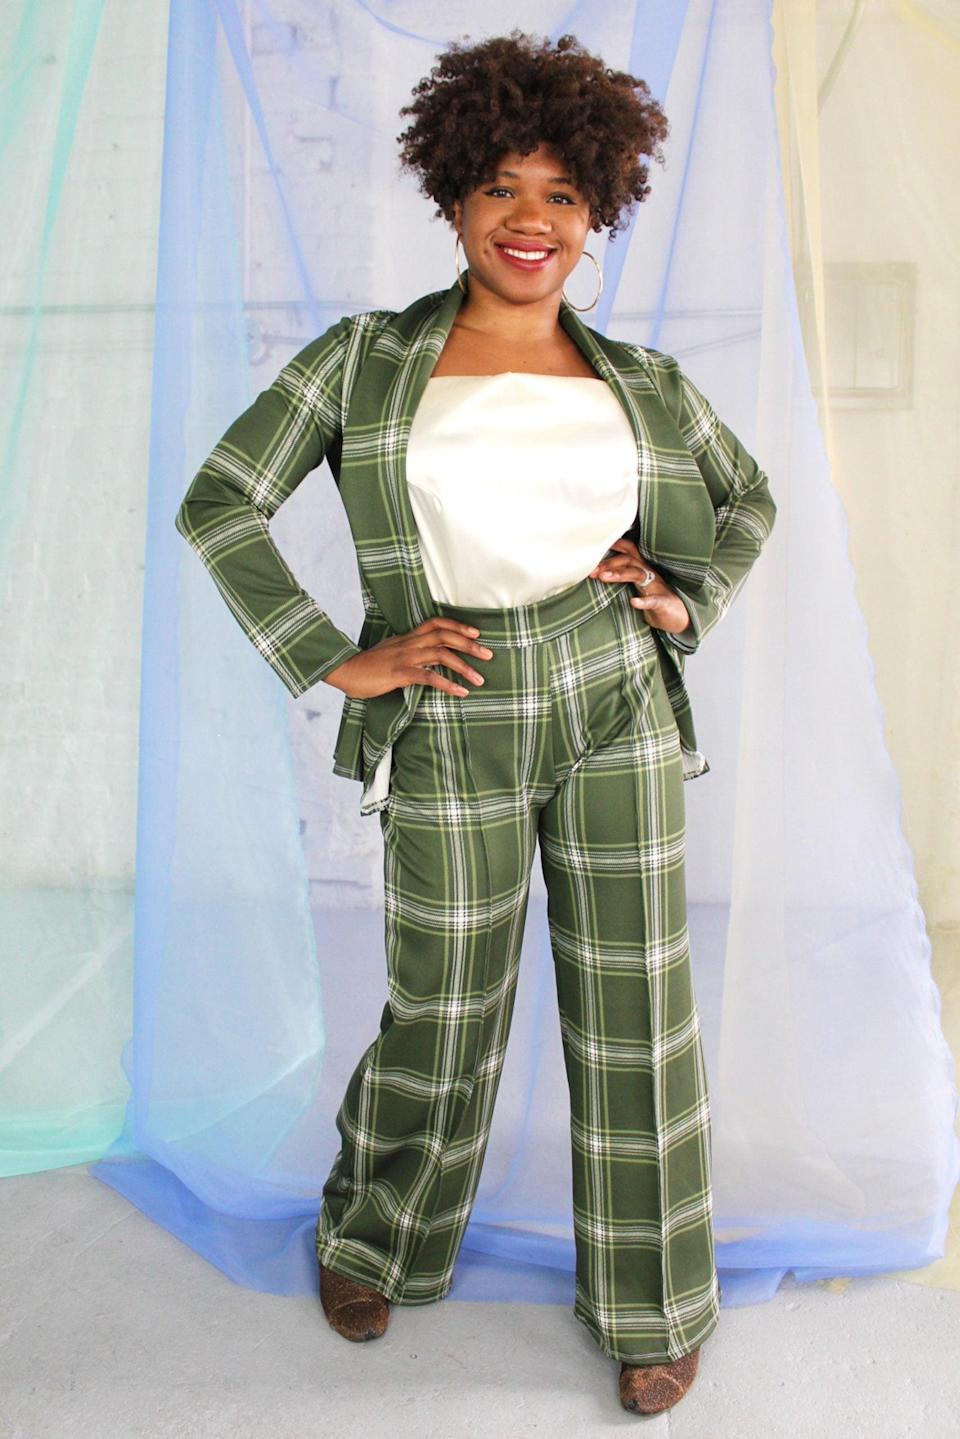 "<br><br><strong>Smart Glamour</strong> The Tommy Scuba Wide Leg Suit Pant, $, available at <a href=""https://go.skimresources.com/?id=30283X879131&url=https%3A%2F%2Fsmartglamour.com%2Fshop%2Fthe-tommy-scuba-wide-leg-suit-pant%2F"" rel=""nofollow noopener"" target=""_blank"" data-ylk=""slk:Smart Glamour"" class=""link rapid-noclick-resp"">Smart Glamour</a>"